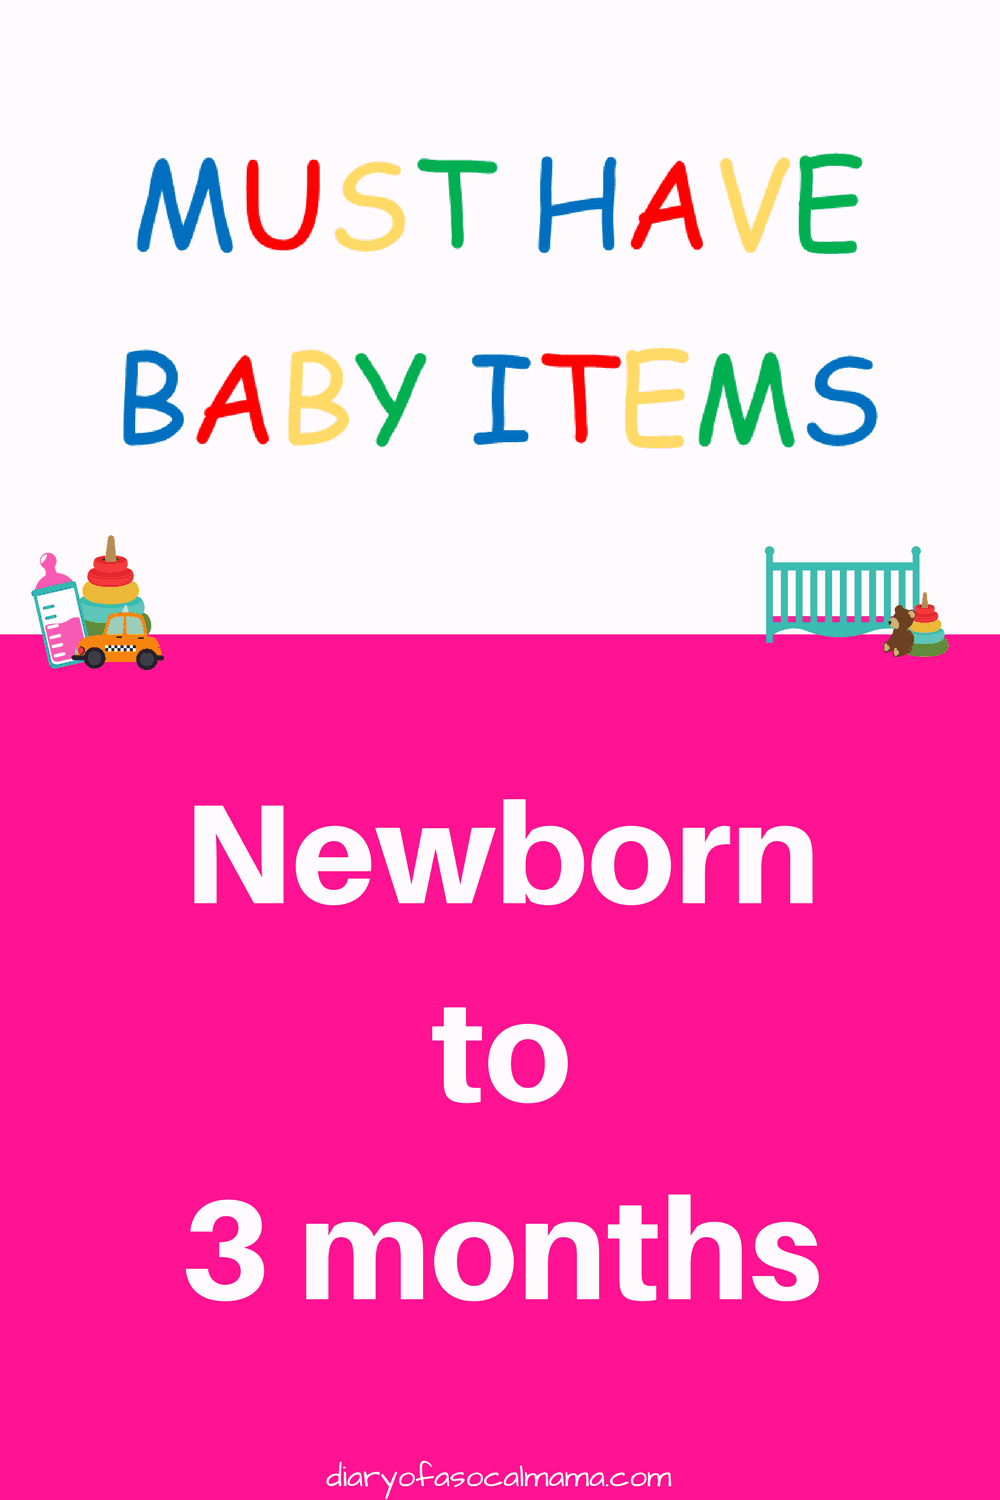 Check out my list of essential baby items for newborn to 3 month old. These must have items are sure to please your little one.